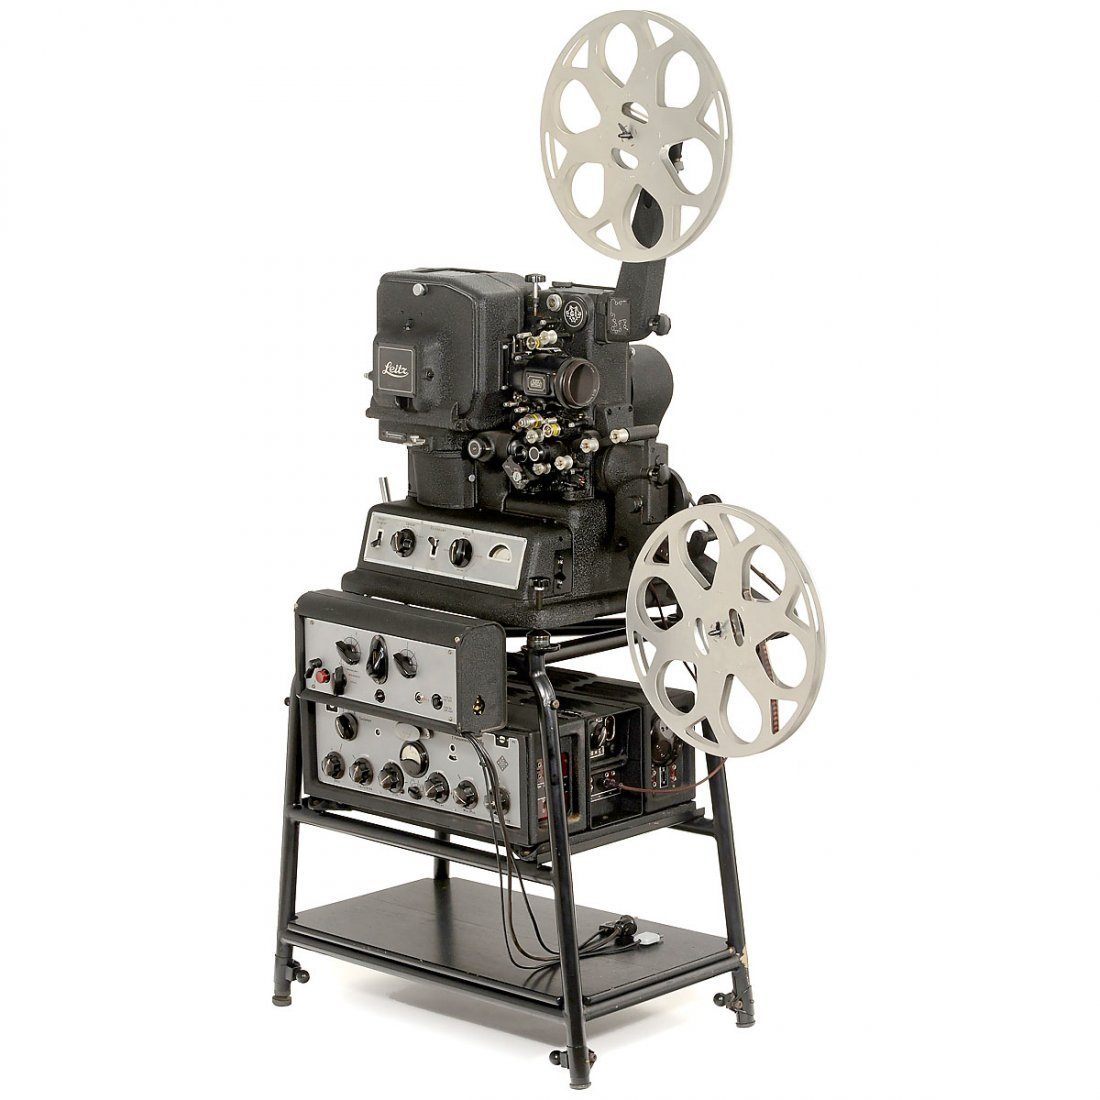 Leitz G1 16mm Theater Projector, c. 1955